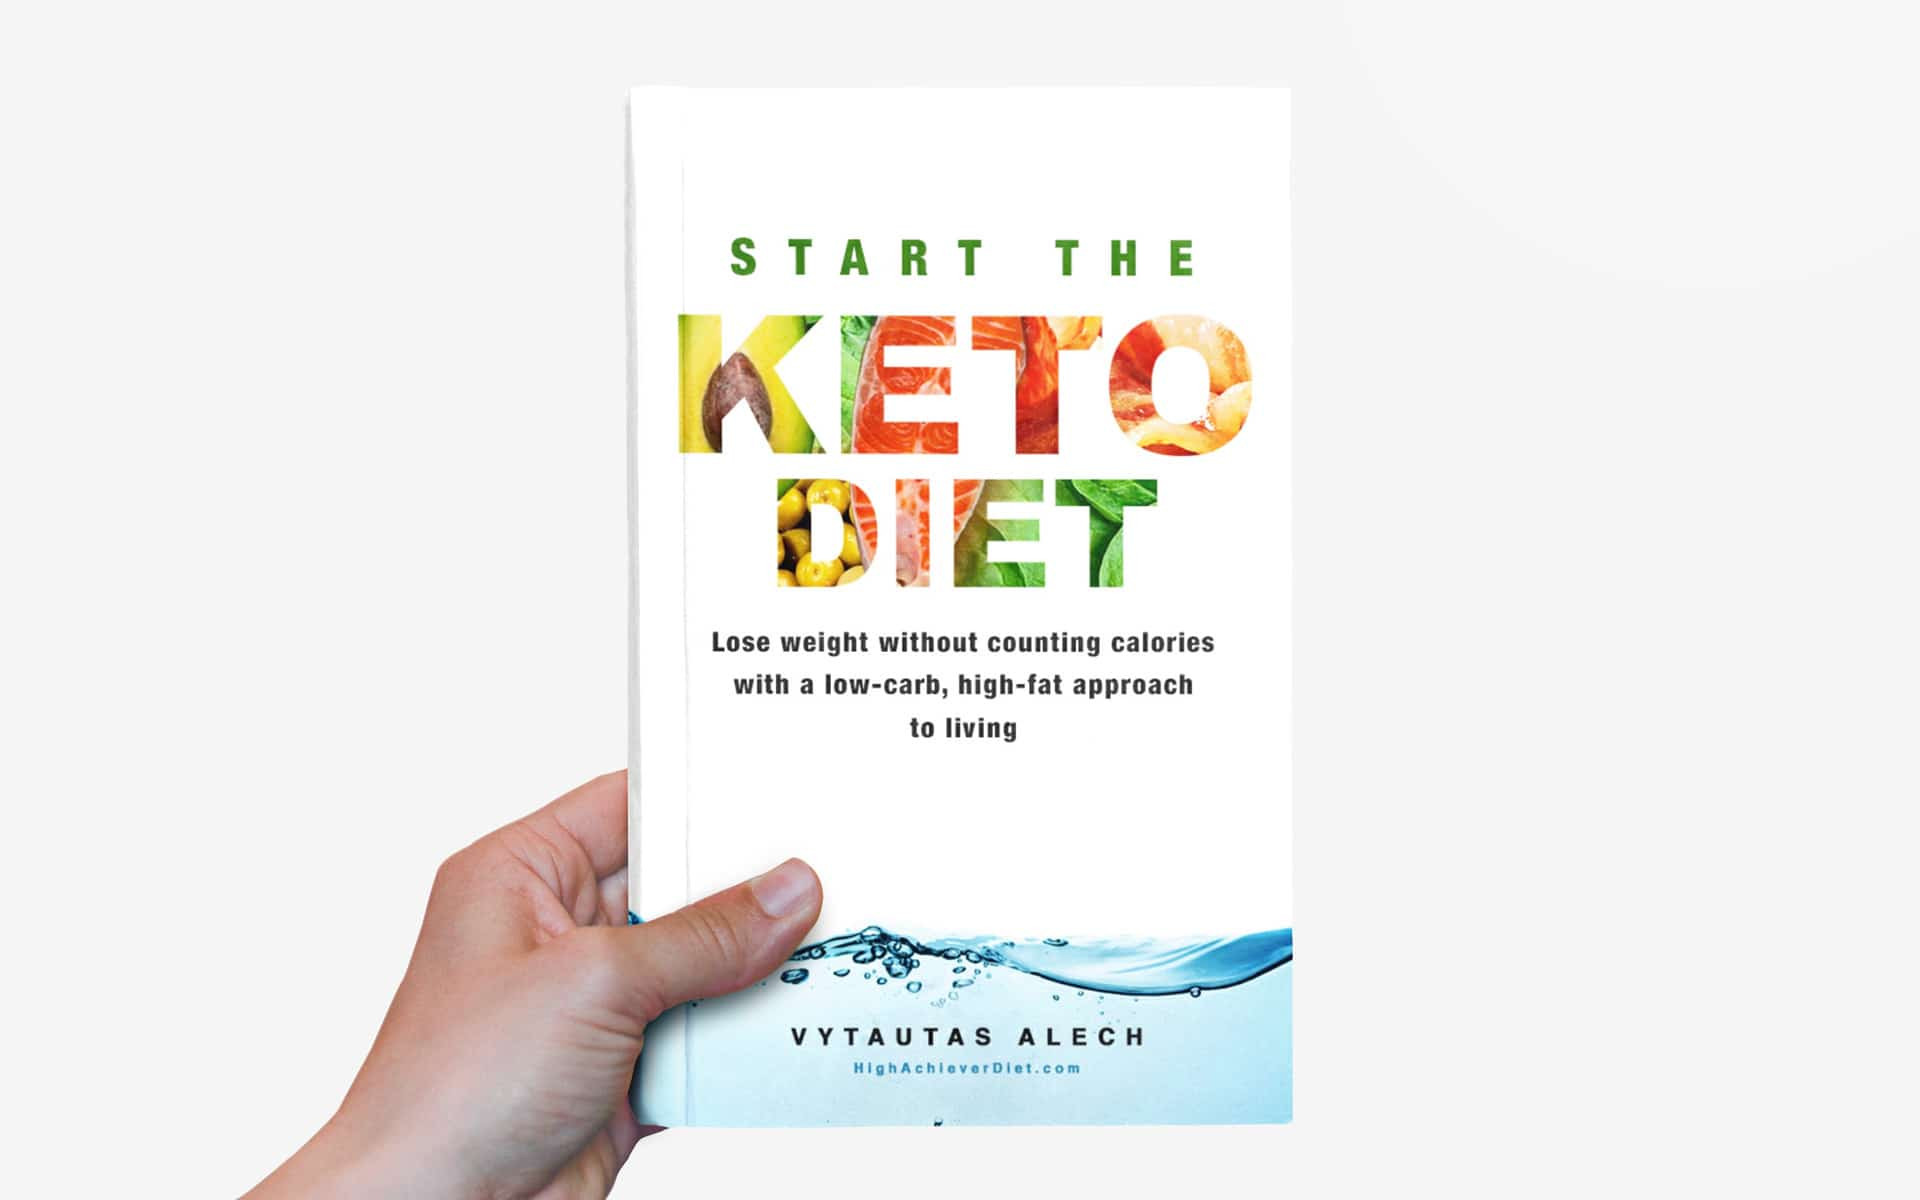 Why Does The Keto Diet Work  Start the Keto Diet by Vytautas Alech